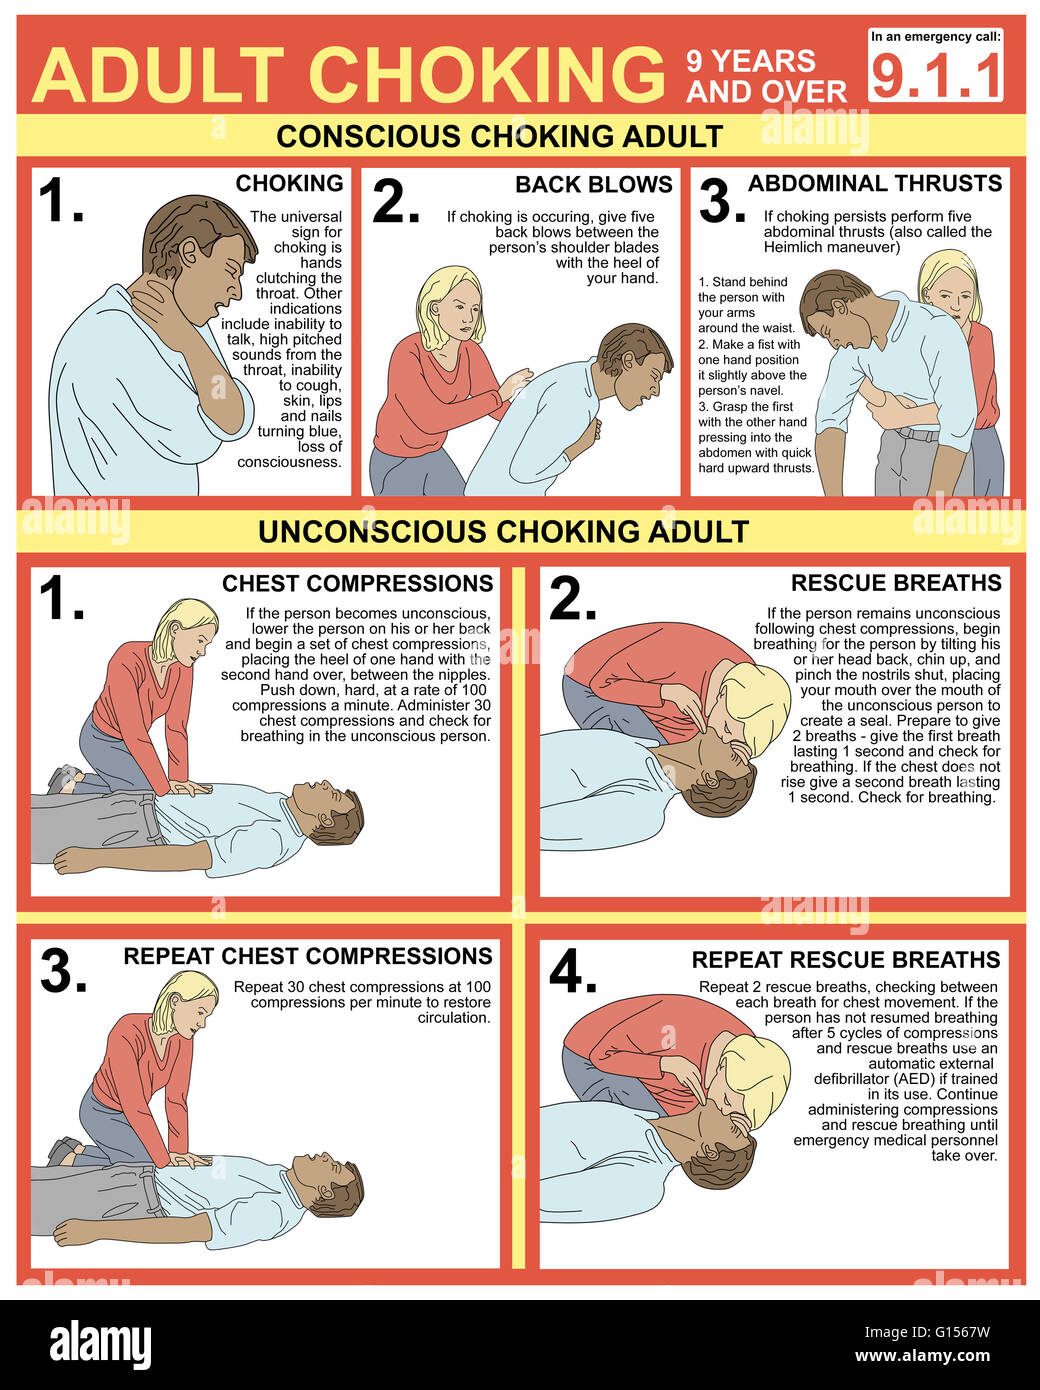 Choking First Aid Stock Photos Choking First Aid Stock Images Alamy